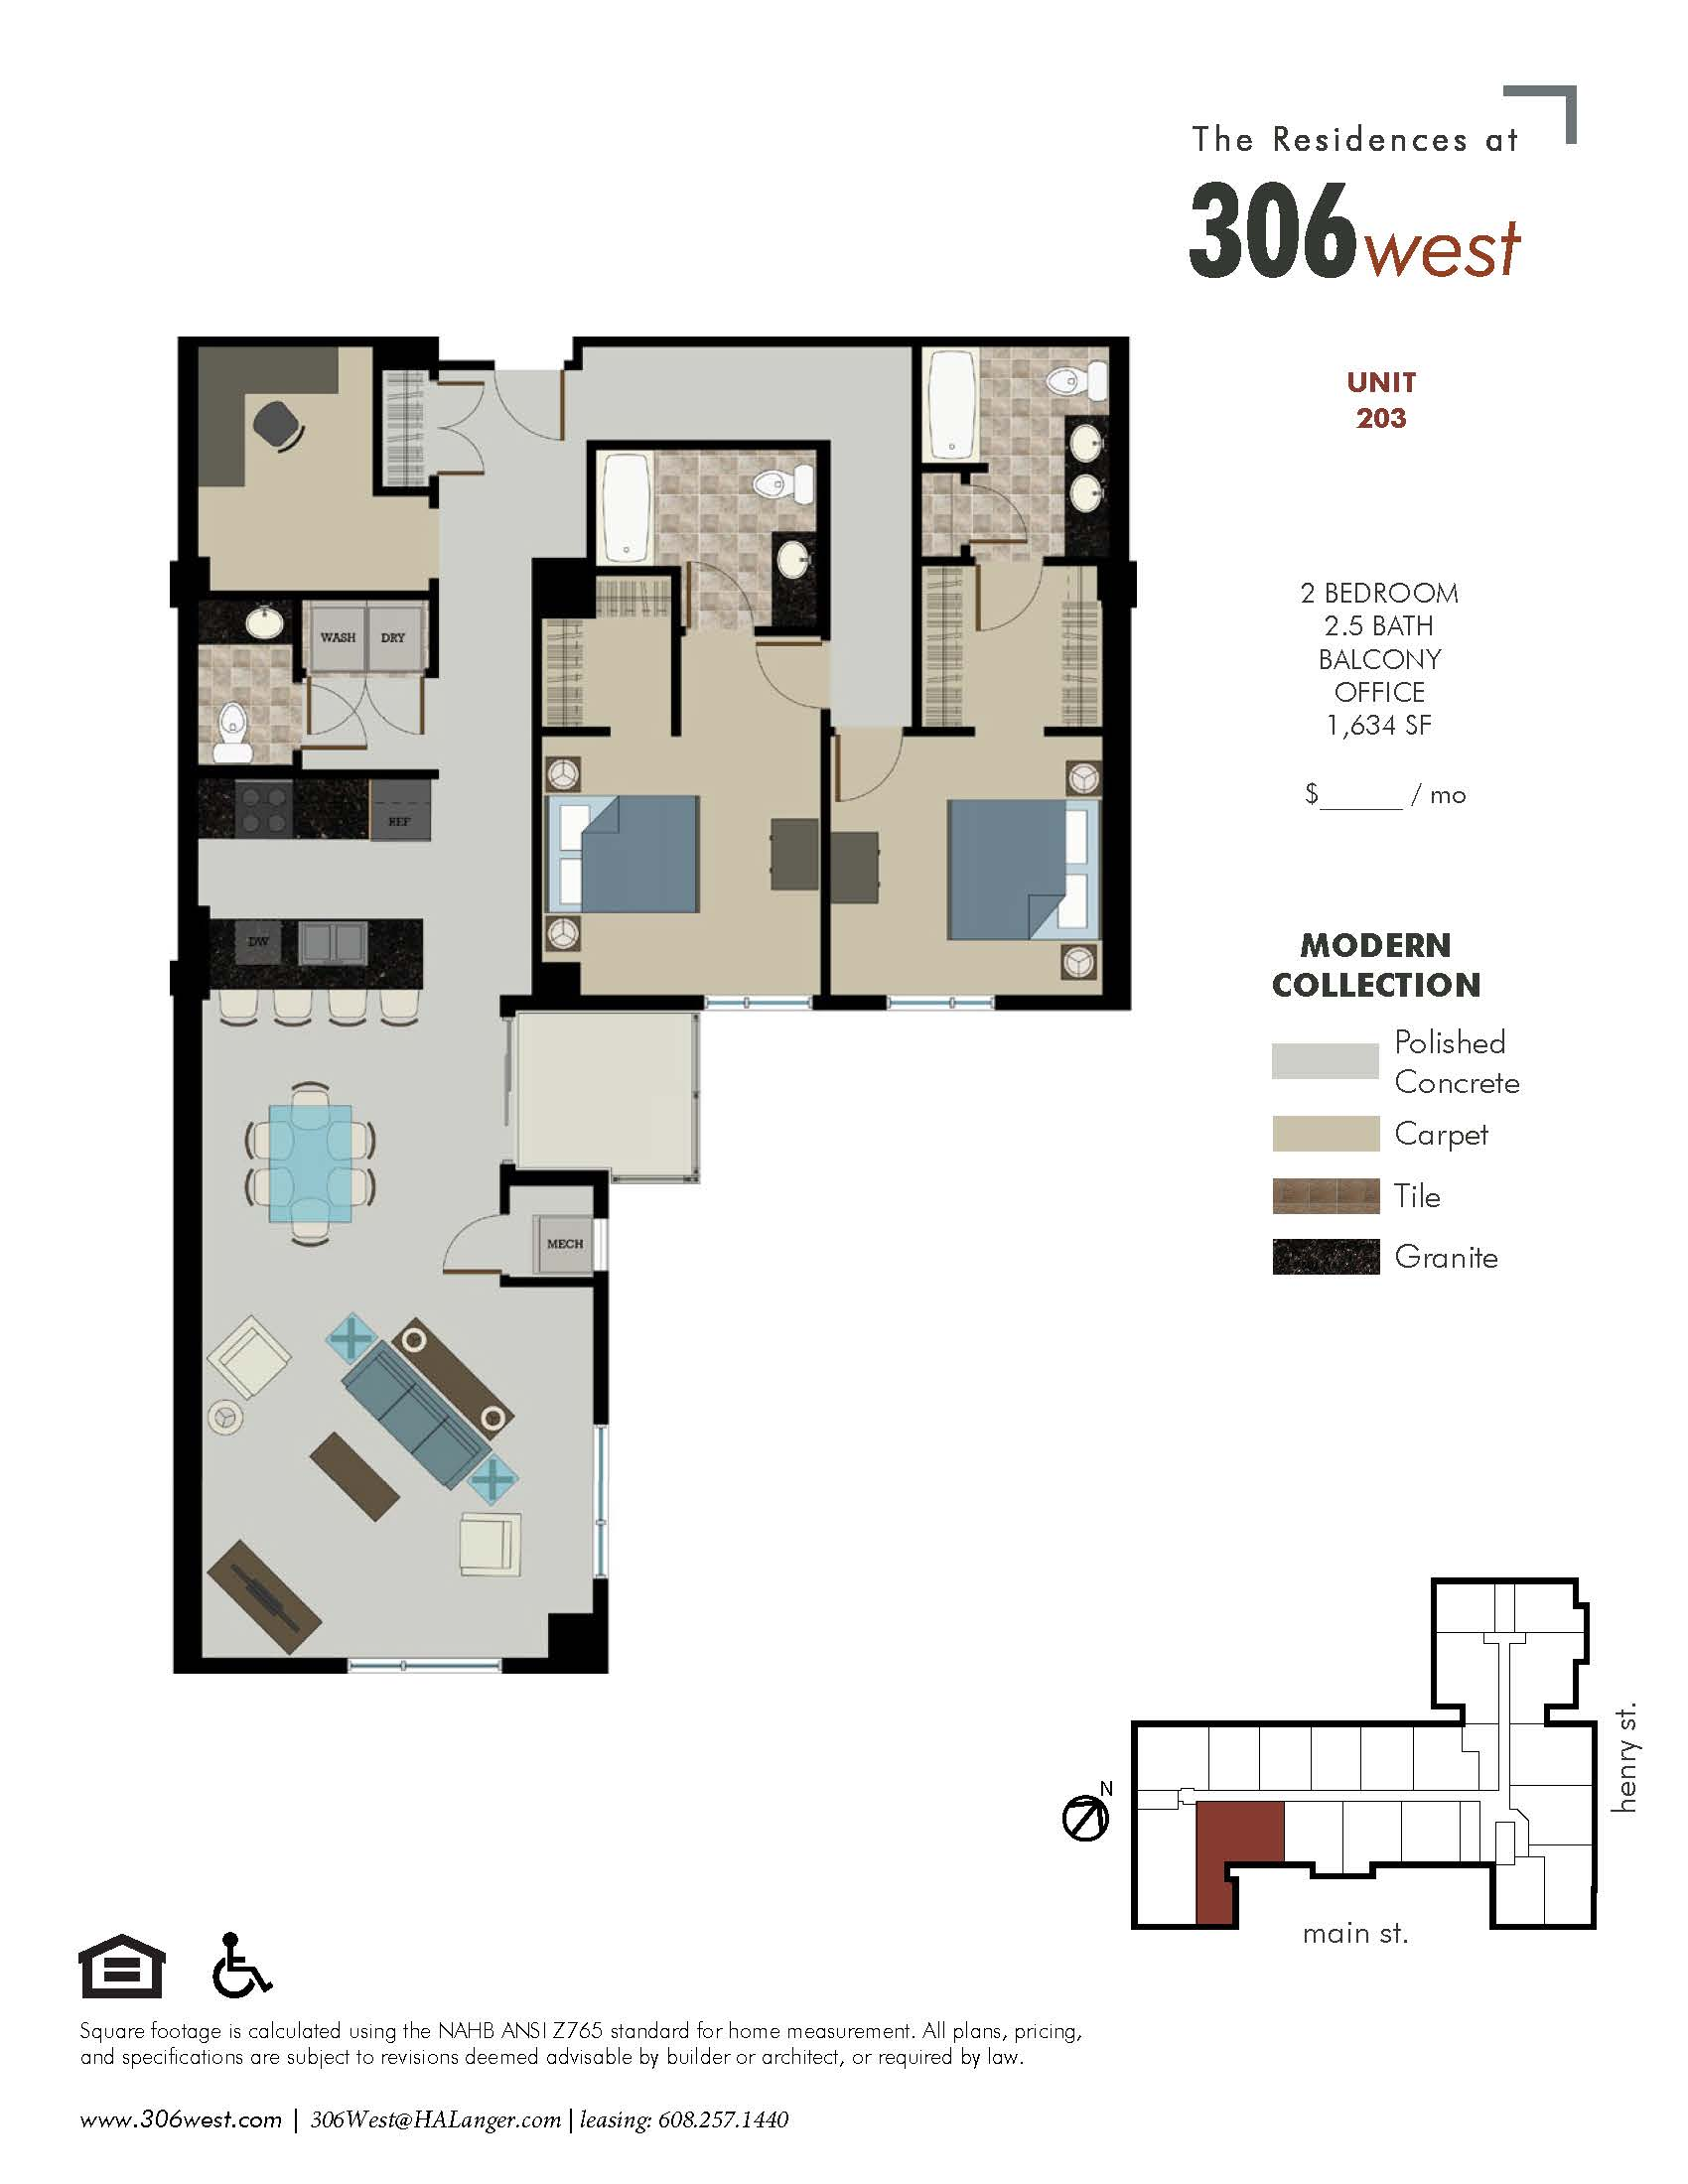 Over 1600 sq ft !